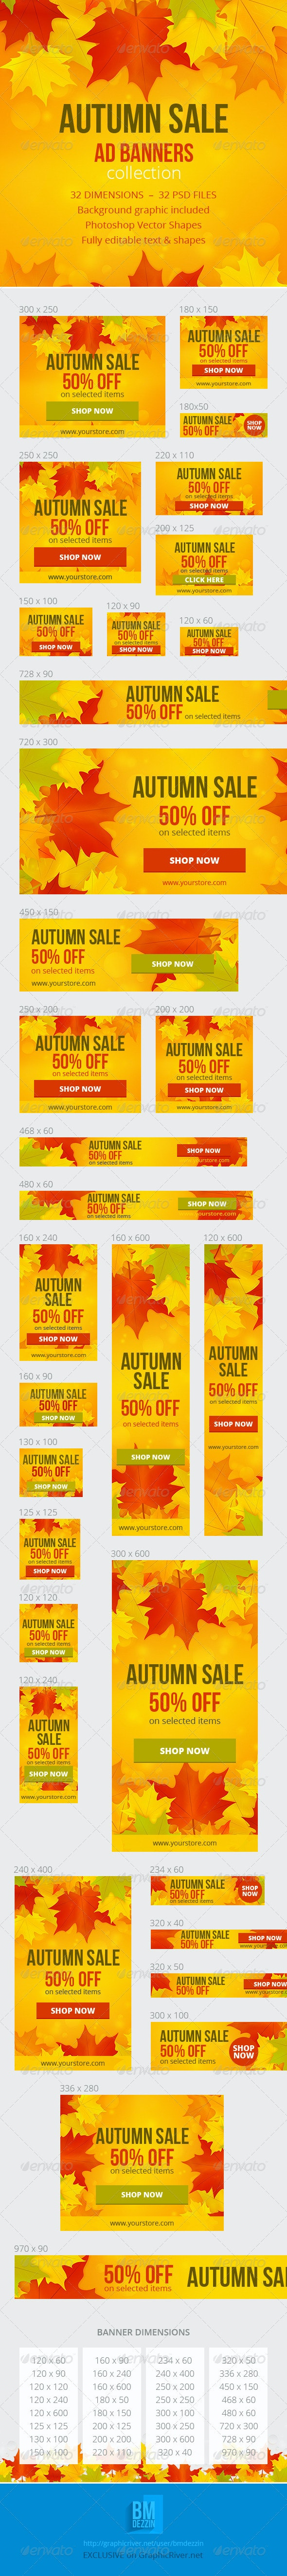 Autumn Sale Ad Banners - Banners & Ads Web Elements